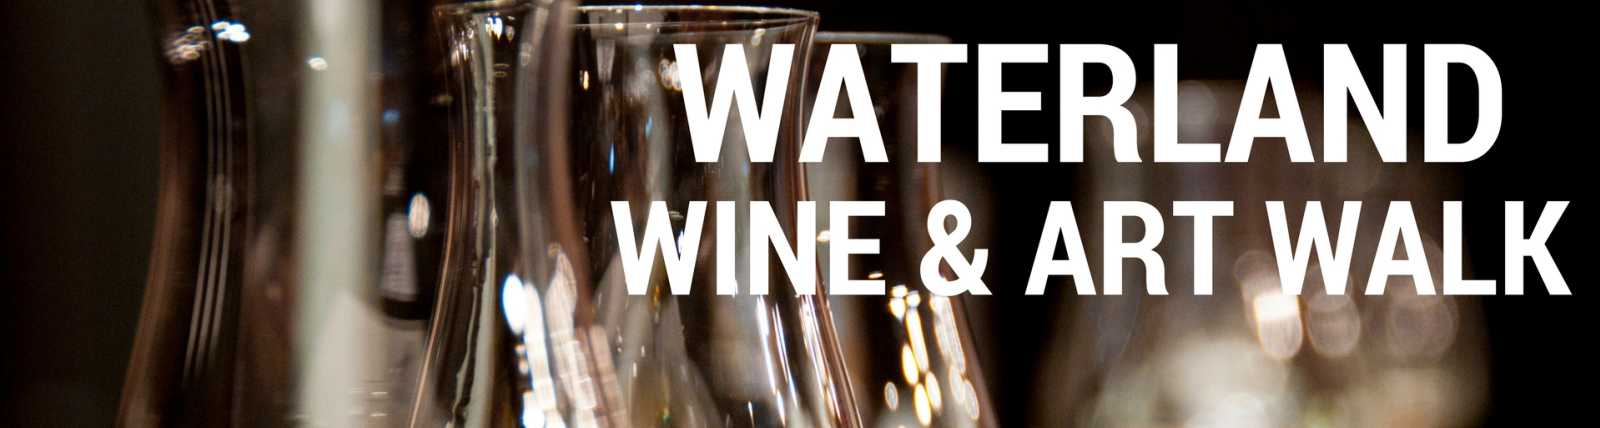 Waterland Wine & Art Walk